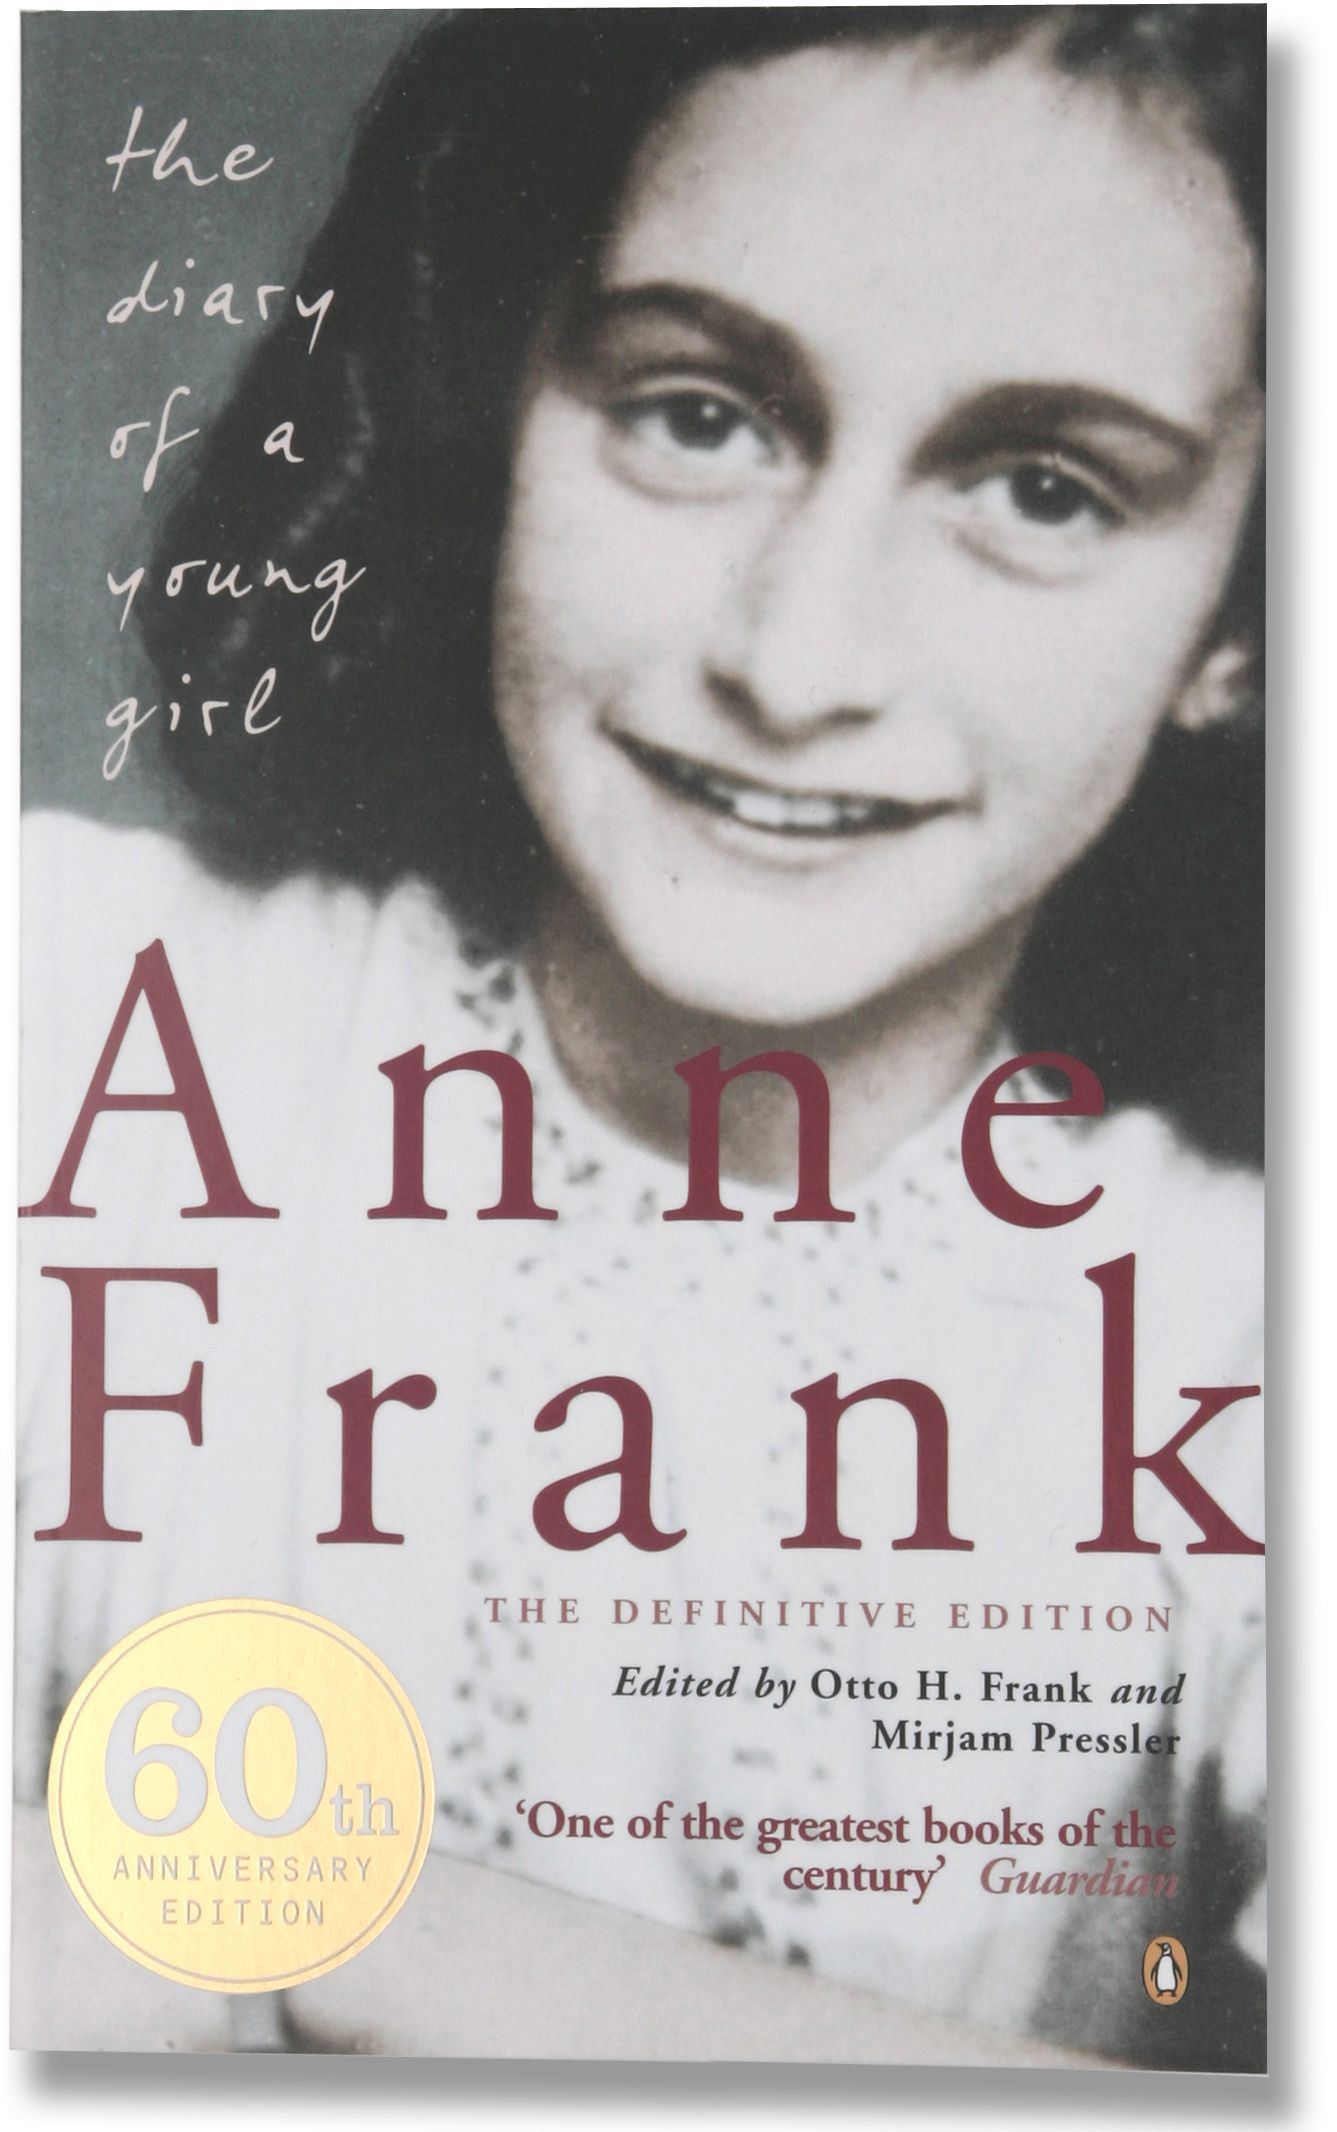 The Diary Of A Young Girl:  Anne Frank